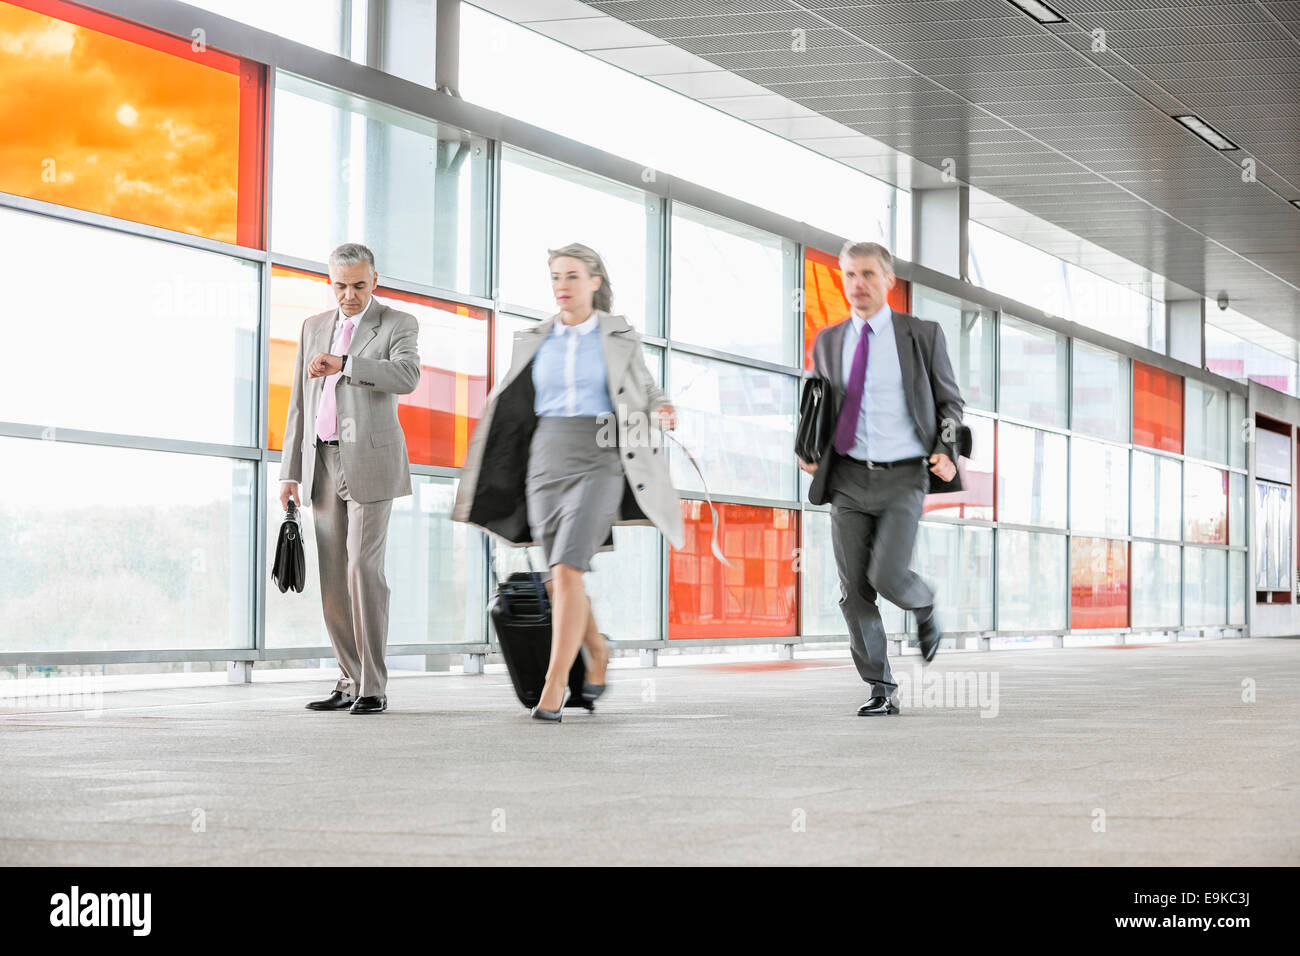 Full length of businesspeople rushing in railroad station - Stock Image